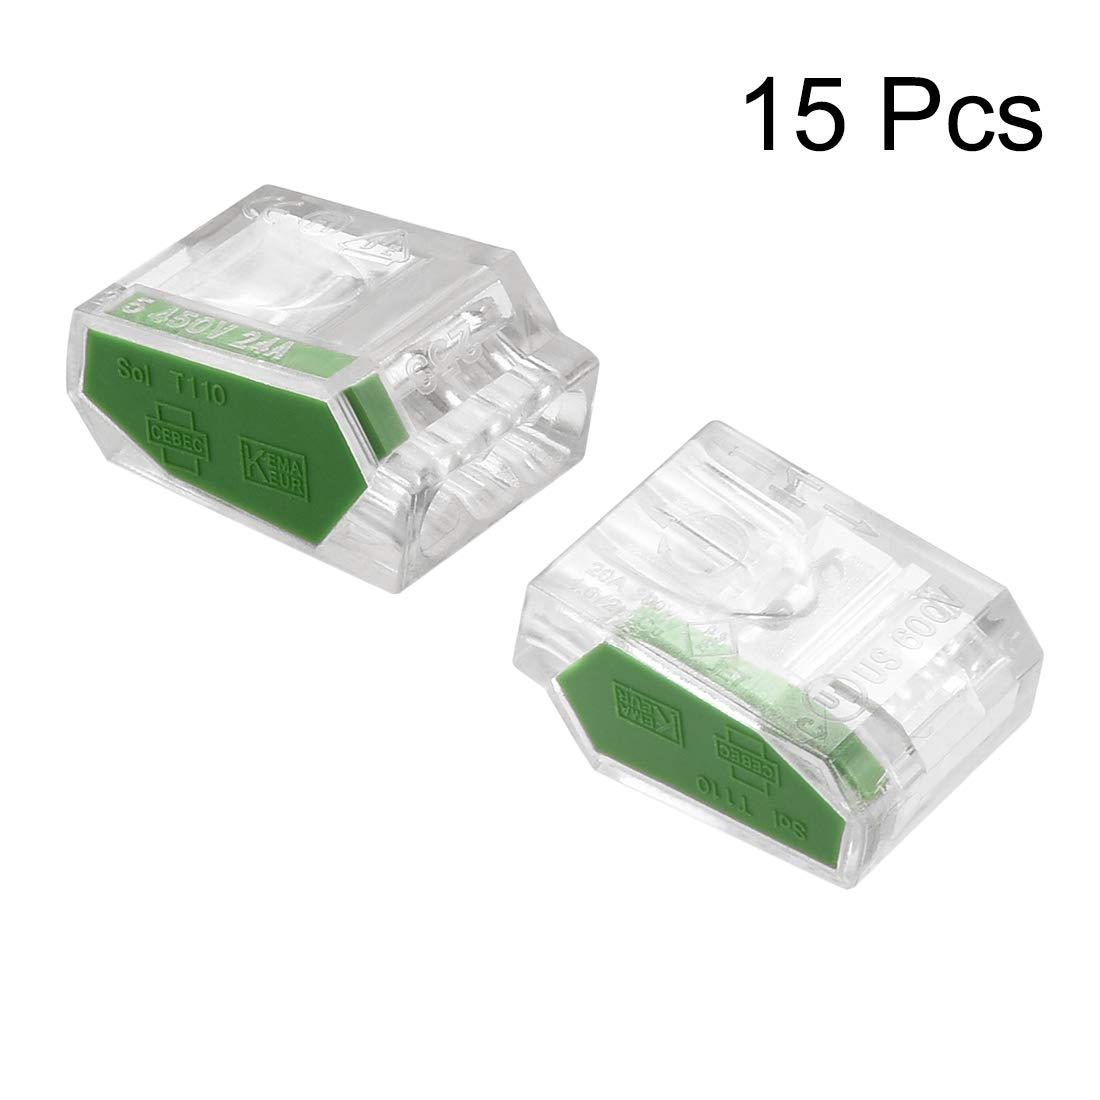 uxcell Push-In Electrical Wire Connectors 18-14 Awg 5-Port 450V Clear Orange 25 Pack